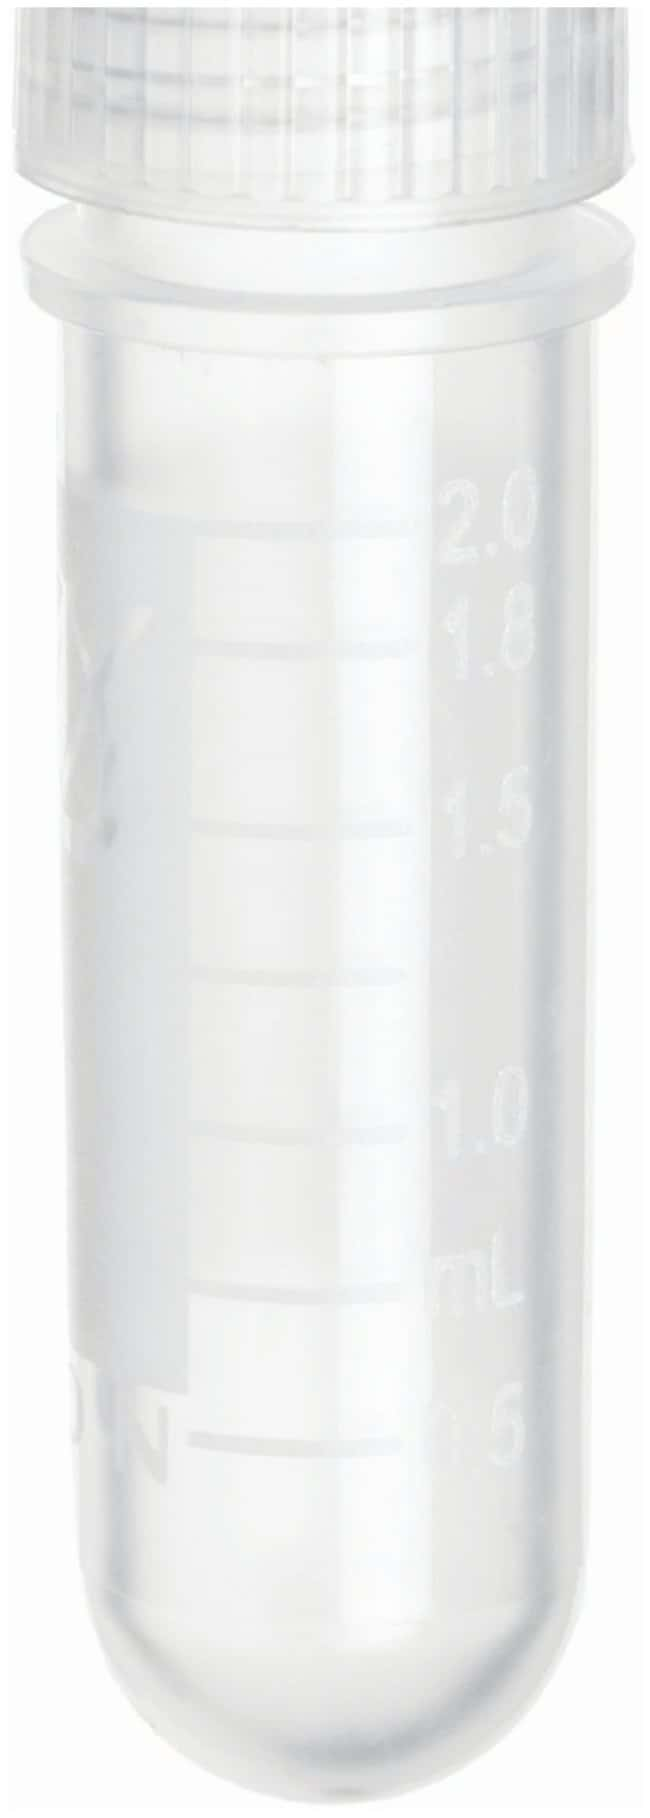 DWK Life SciencesWheaton™ CryoELITE™ Cryogenic Vials, Round Bottom with External Screw Cap: Cryogenic Storage Cell Culture